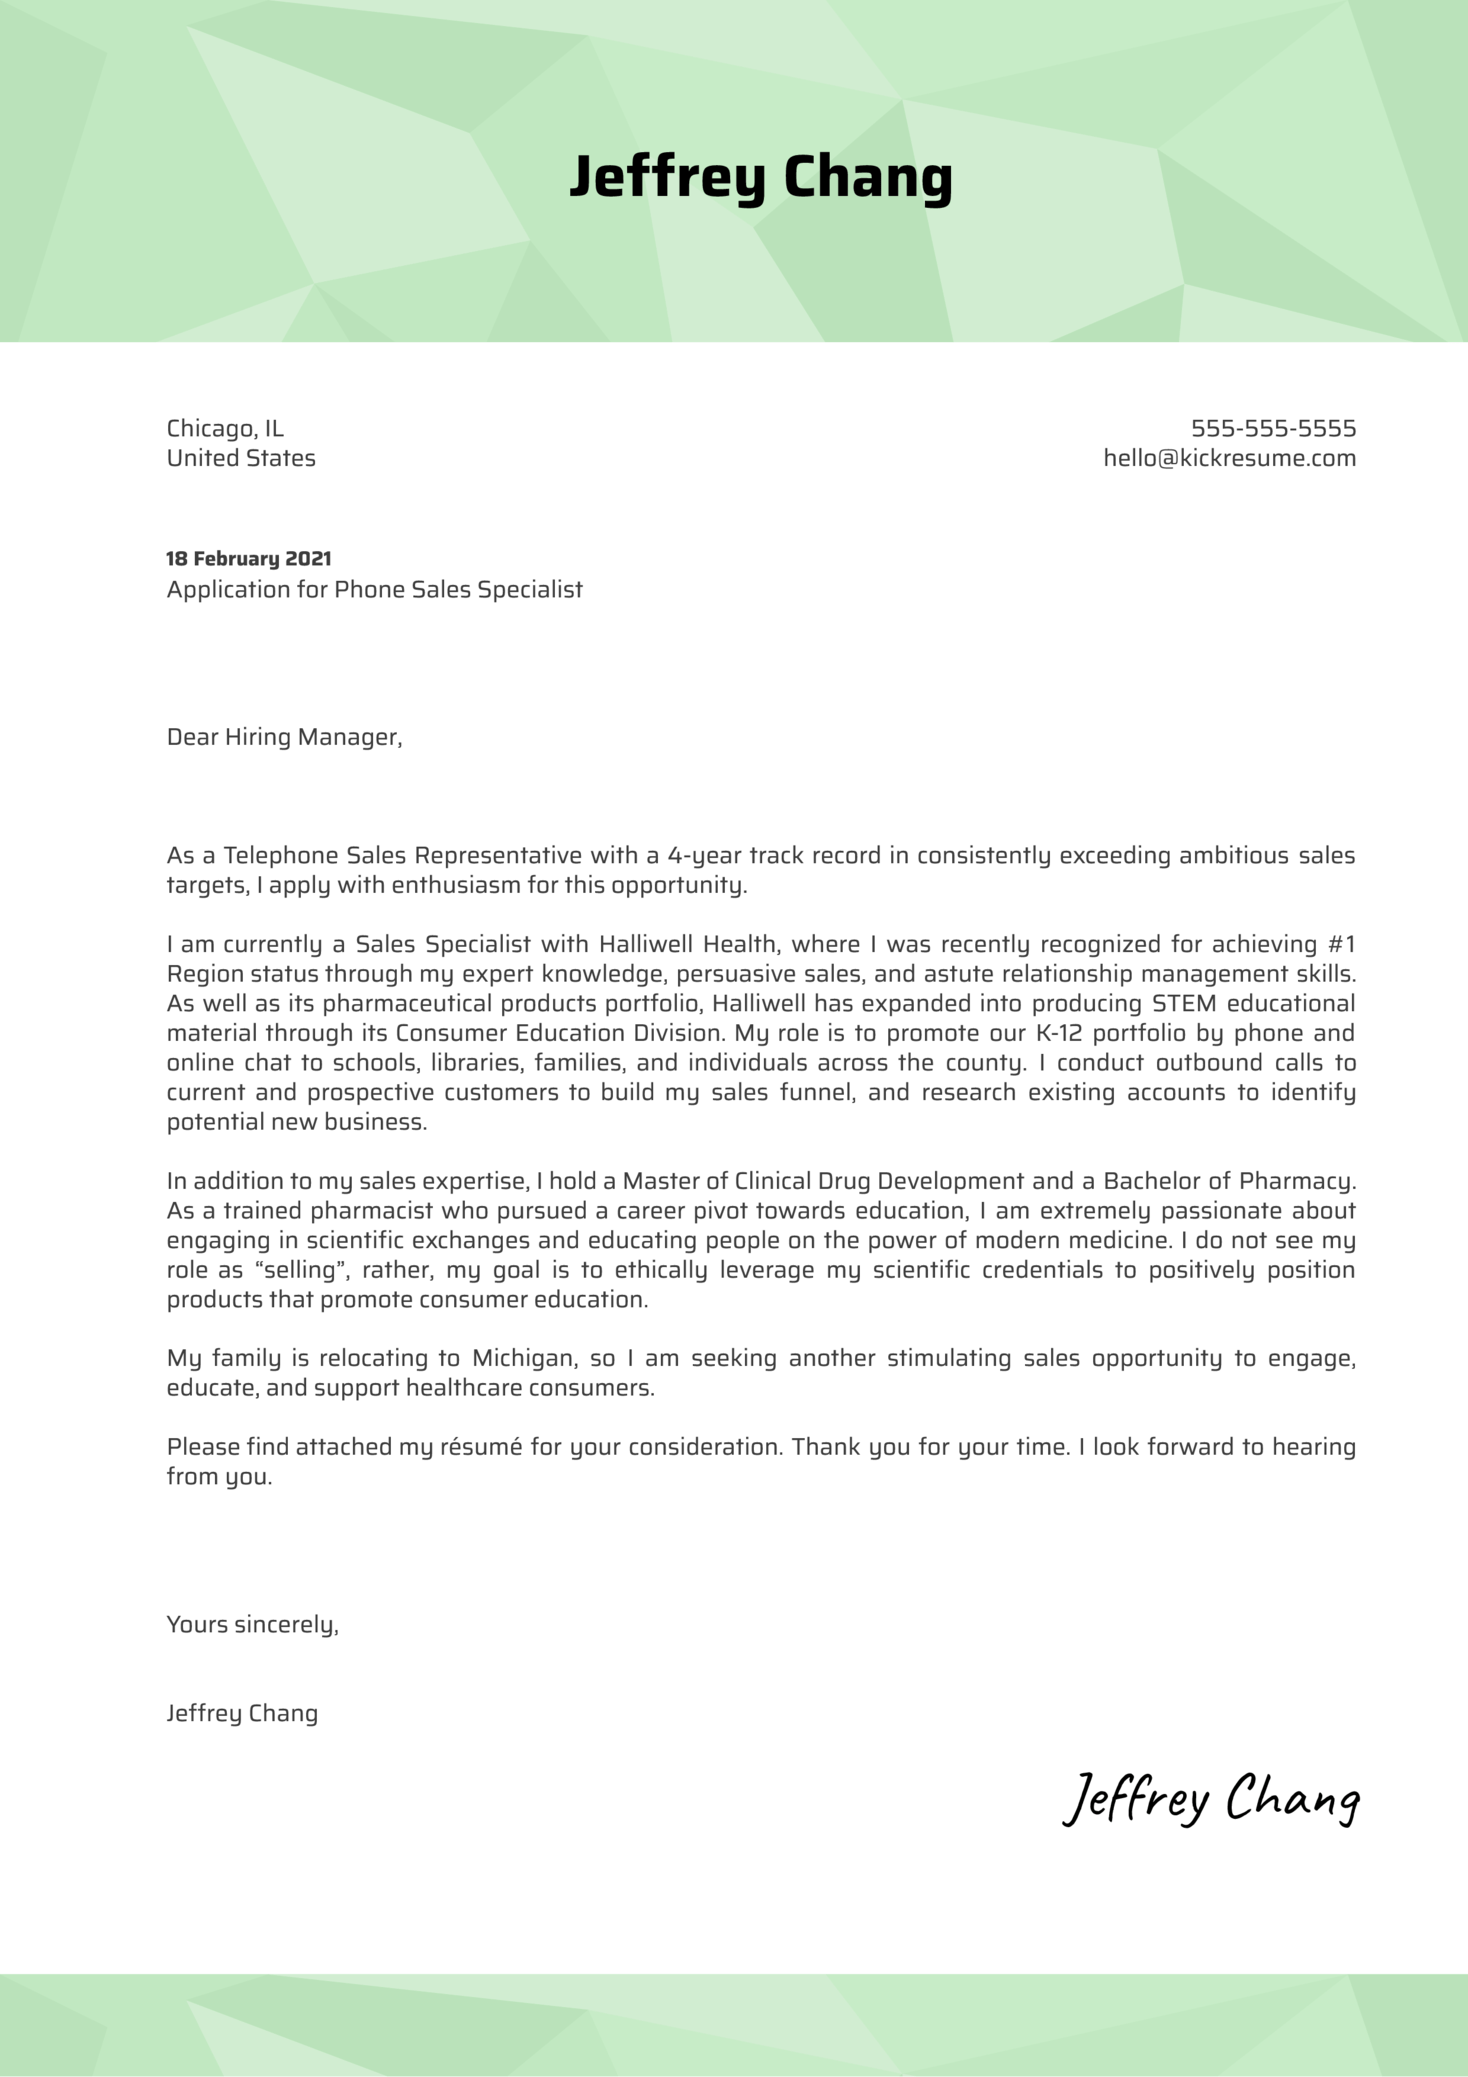 Phone Sales Specialist Cover Letter Example